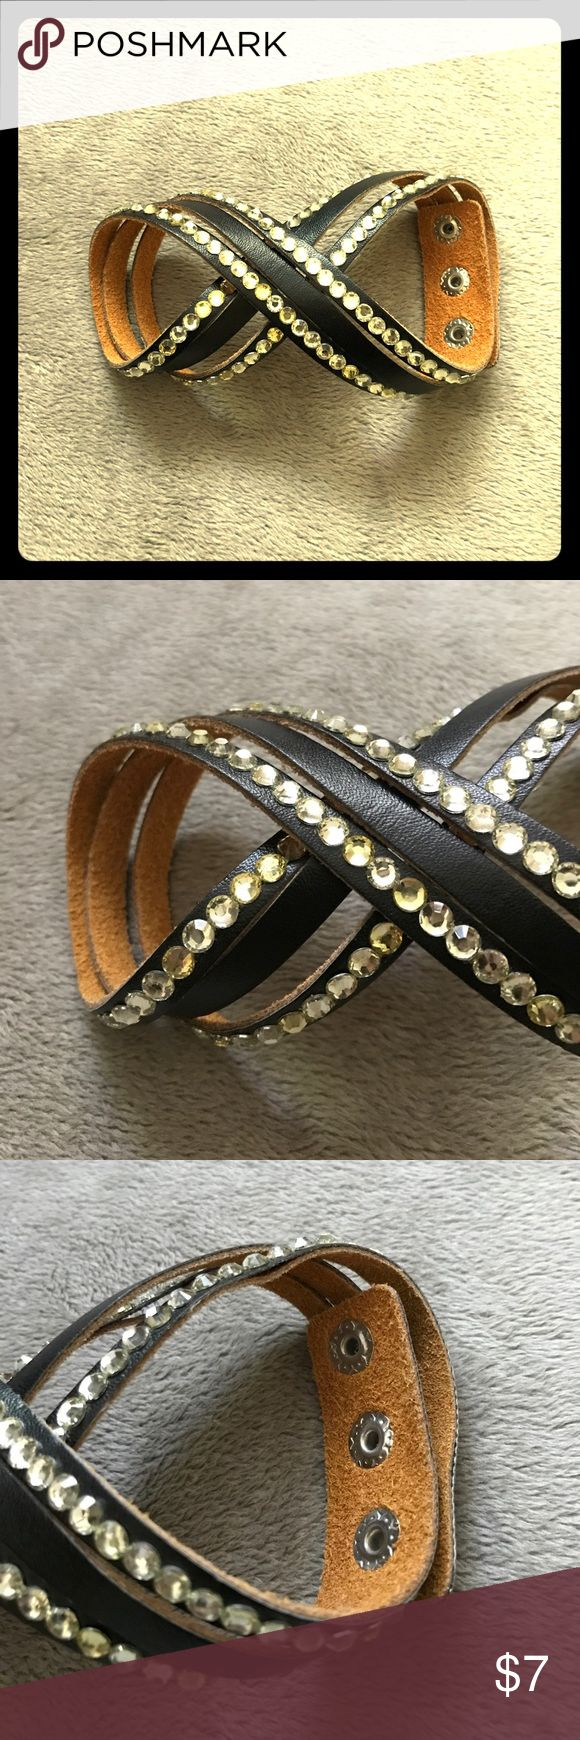 "NWOT Leather Wraparound Bracelet Never worn!  Has three snaps to adjust to your wrist.  Approximately 17"" in total length.  Price is firm unless bundled. Jewelry Bracelets"